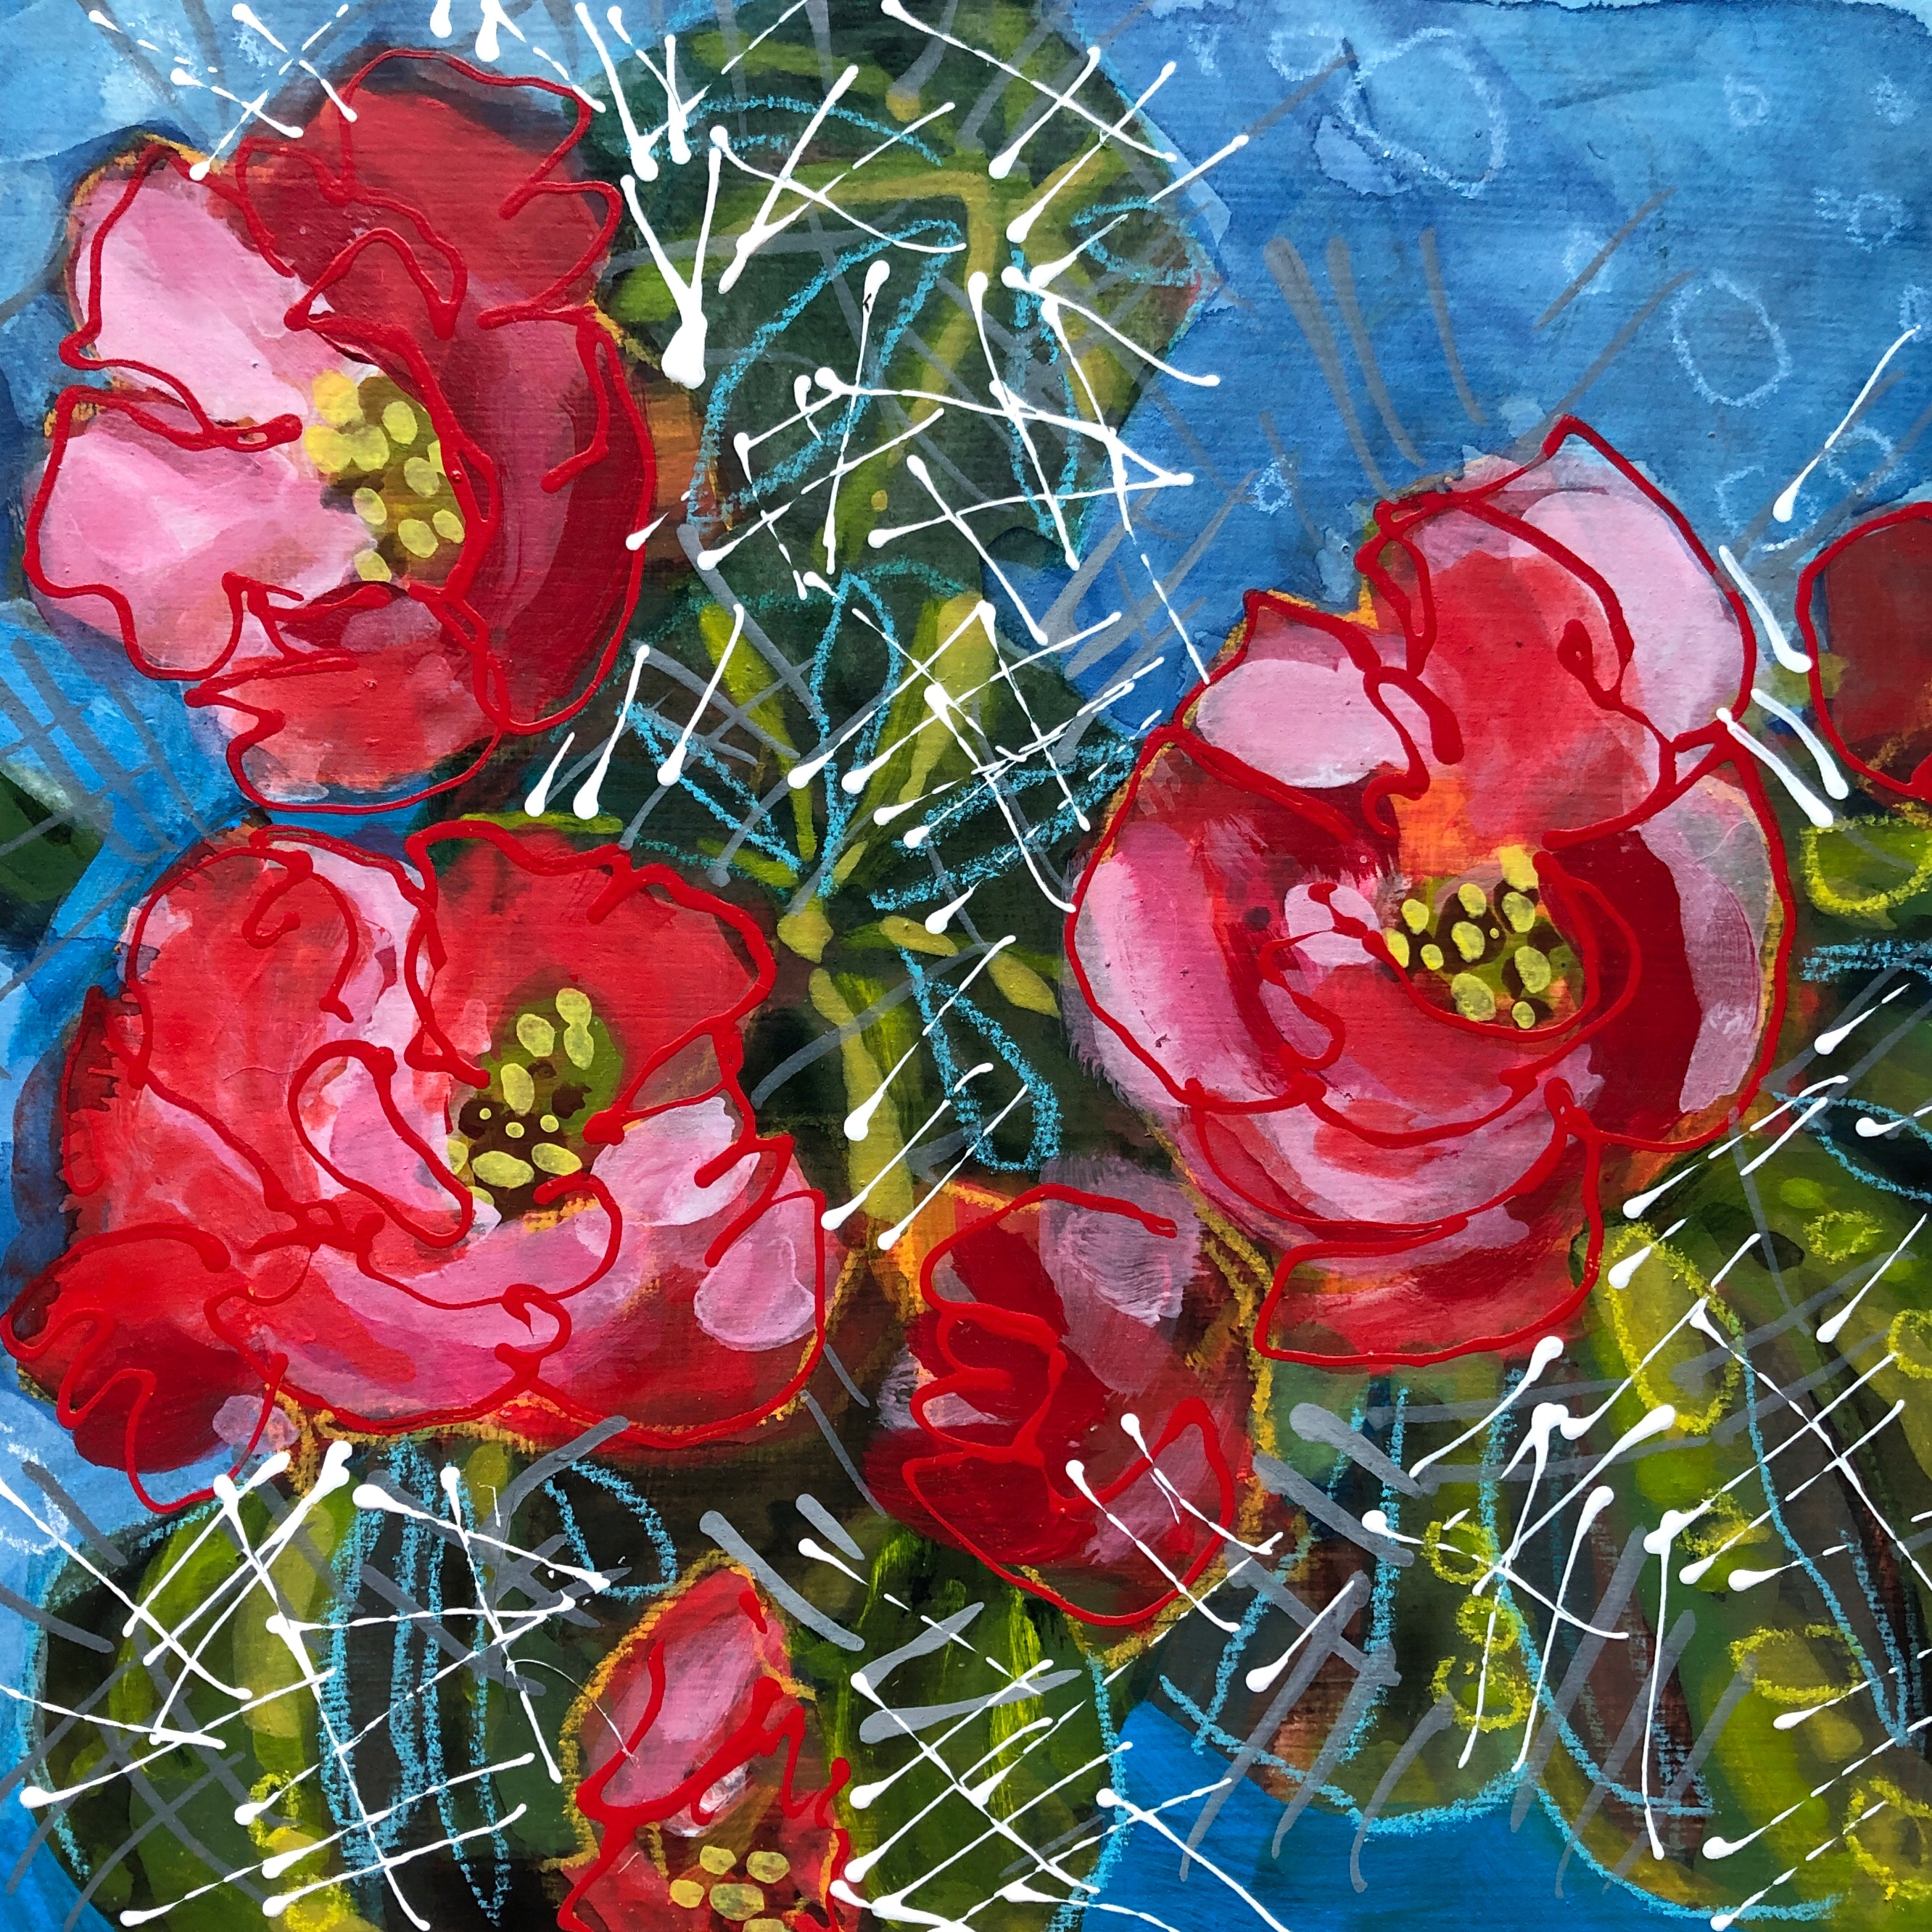 Cactus Flowers No.5 painting by Colorado artist Lance Whitner